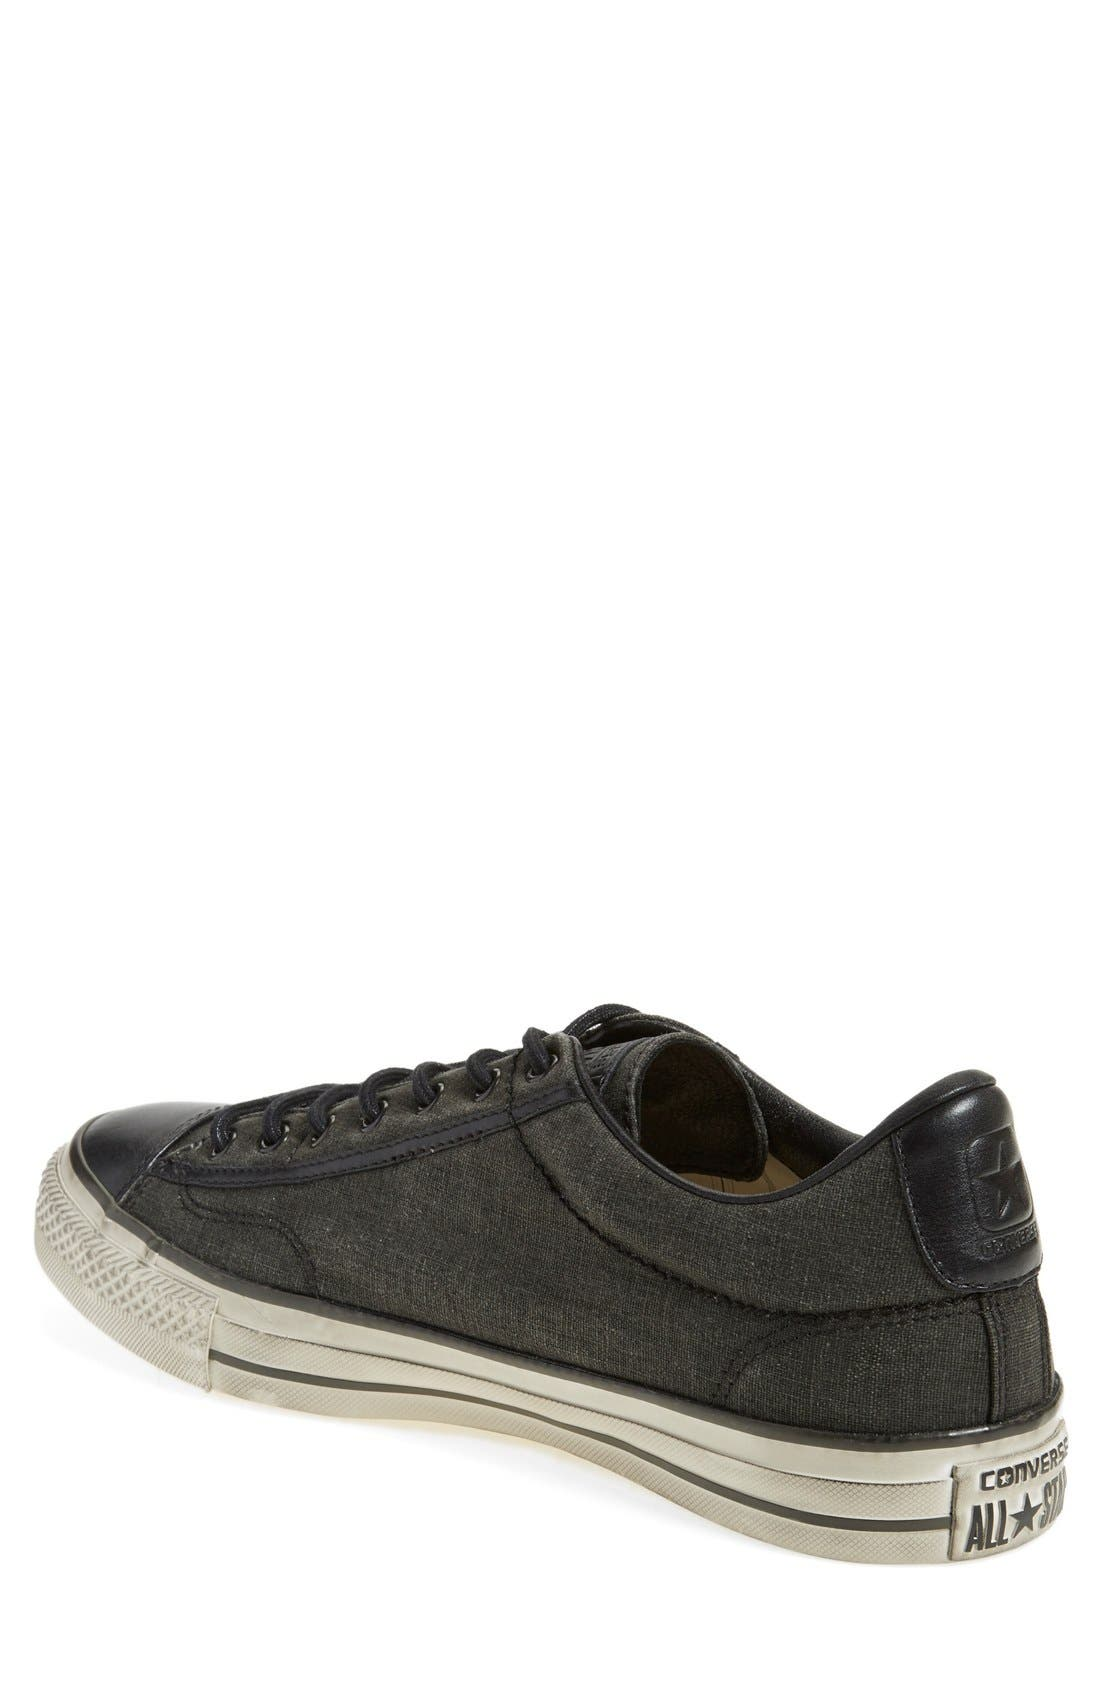 CONVERSE BY JOHN VARVATOS,                             Chuck Taylor<sup>®</sup> All Star<sup>®</sup> Sneaker,                             Alternate thumbnail 2, color,                             013